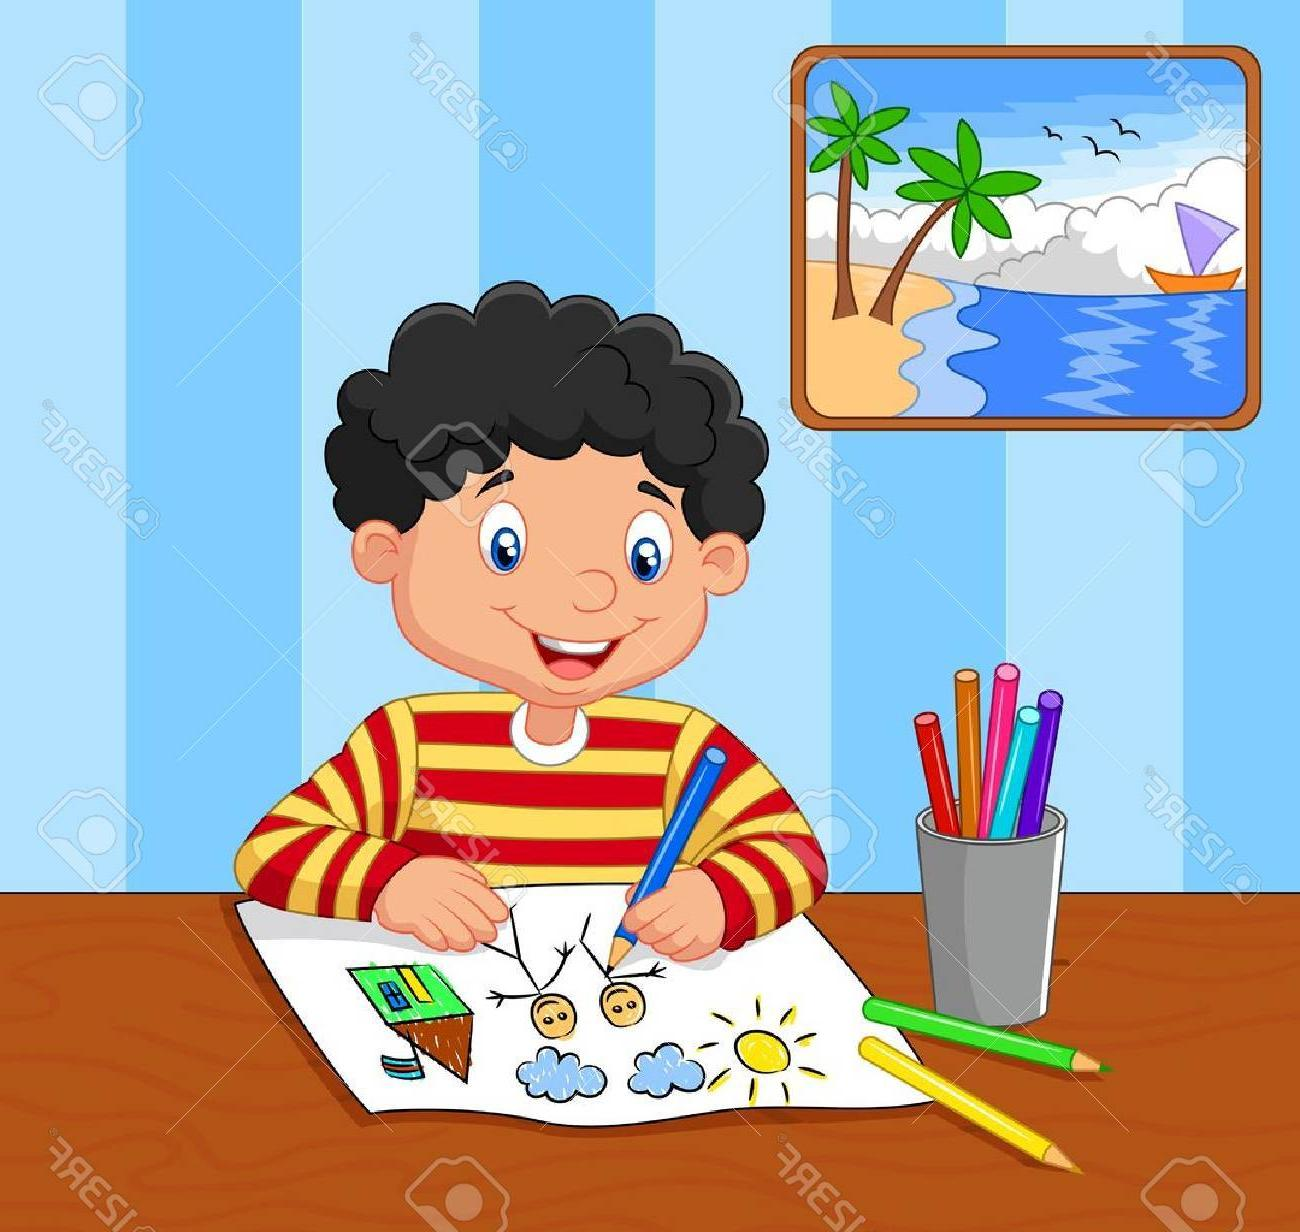 clipart free download Picture of a at. Boy drawing clipart